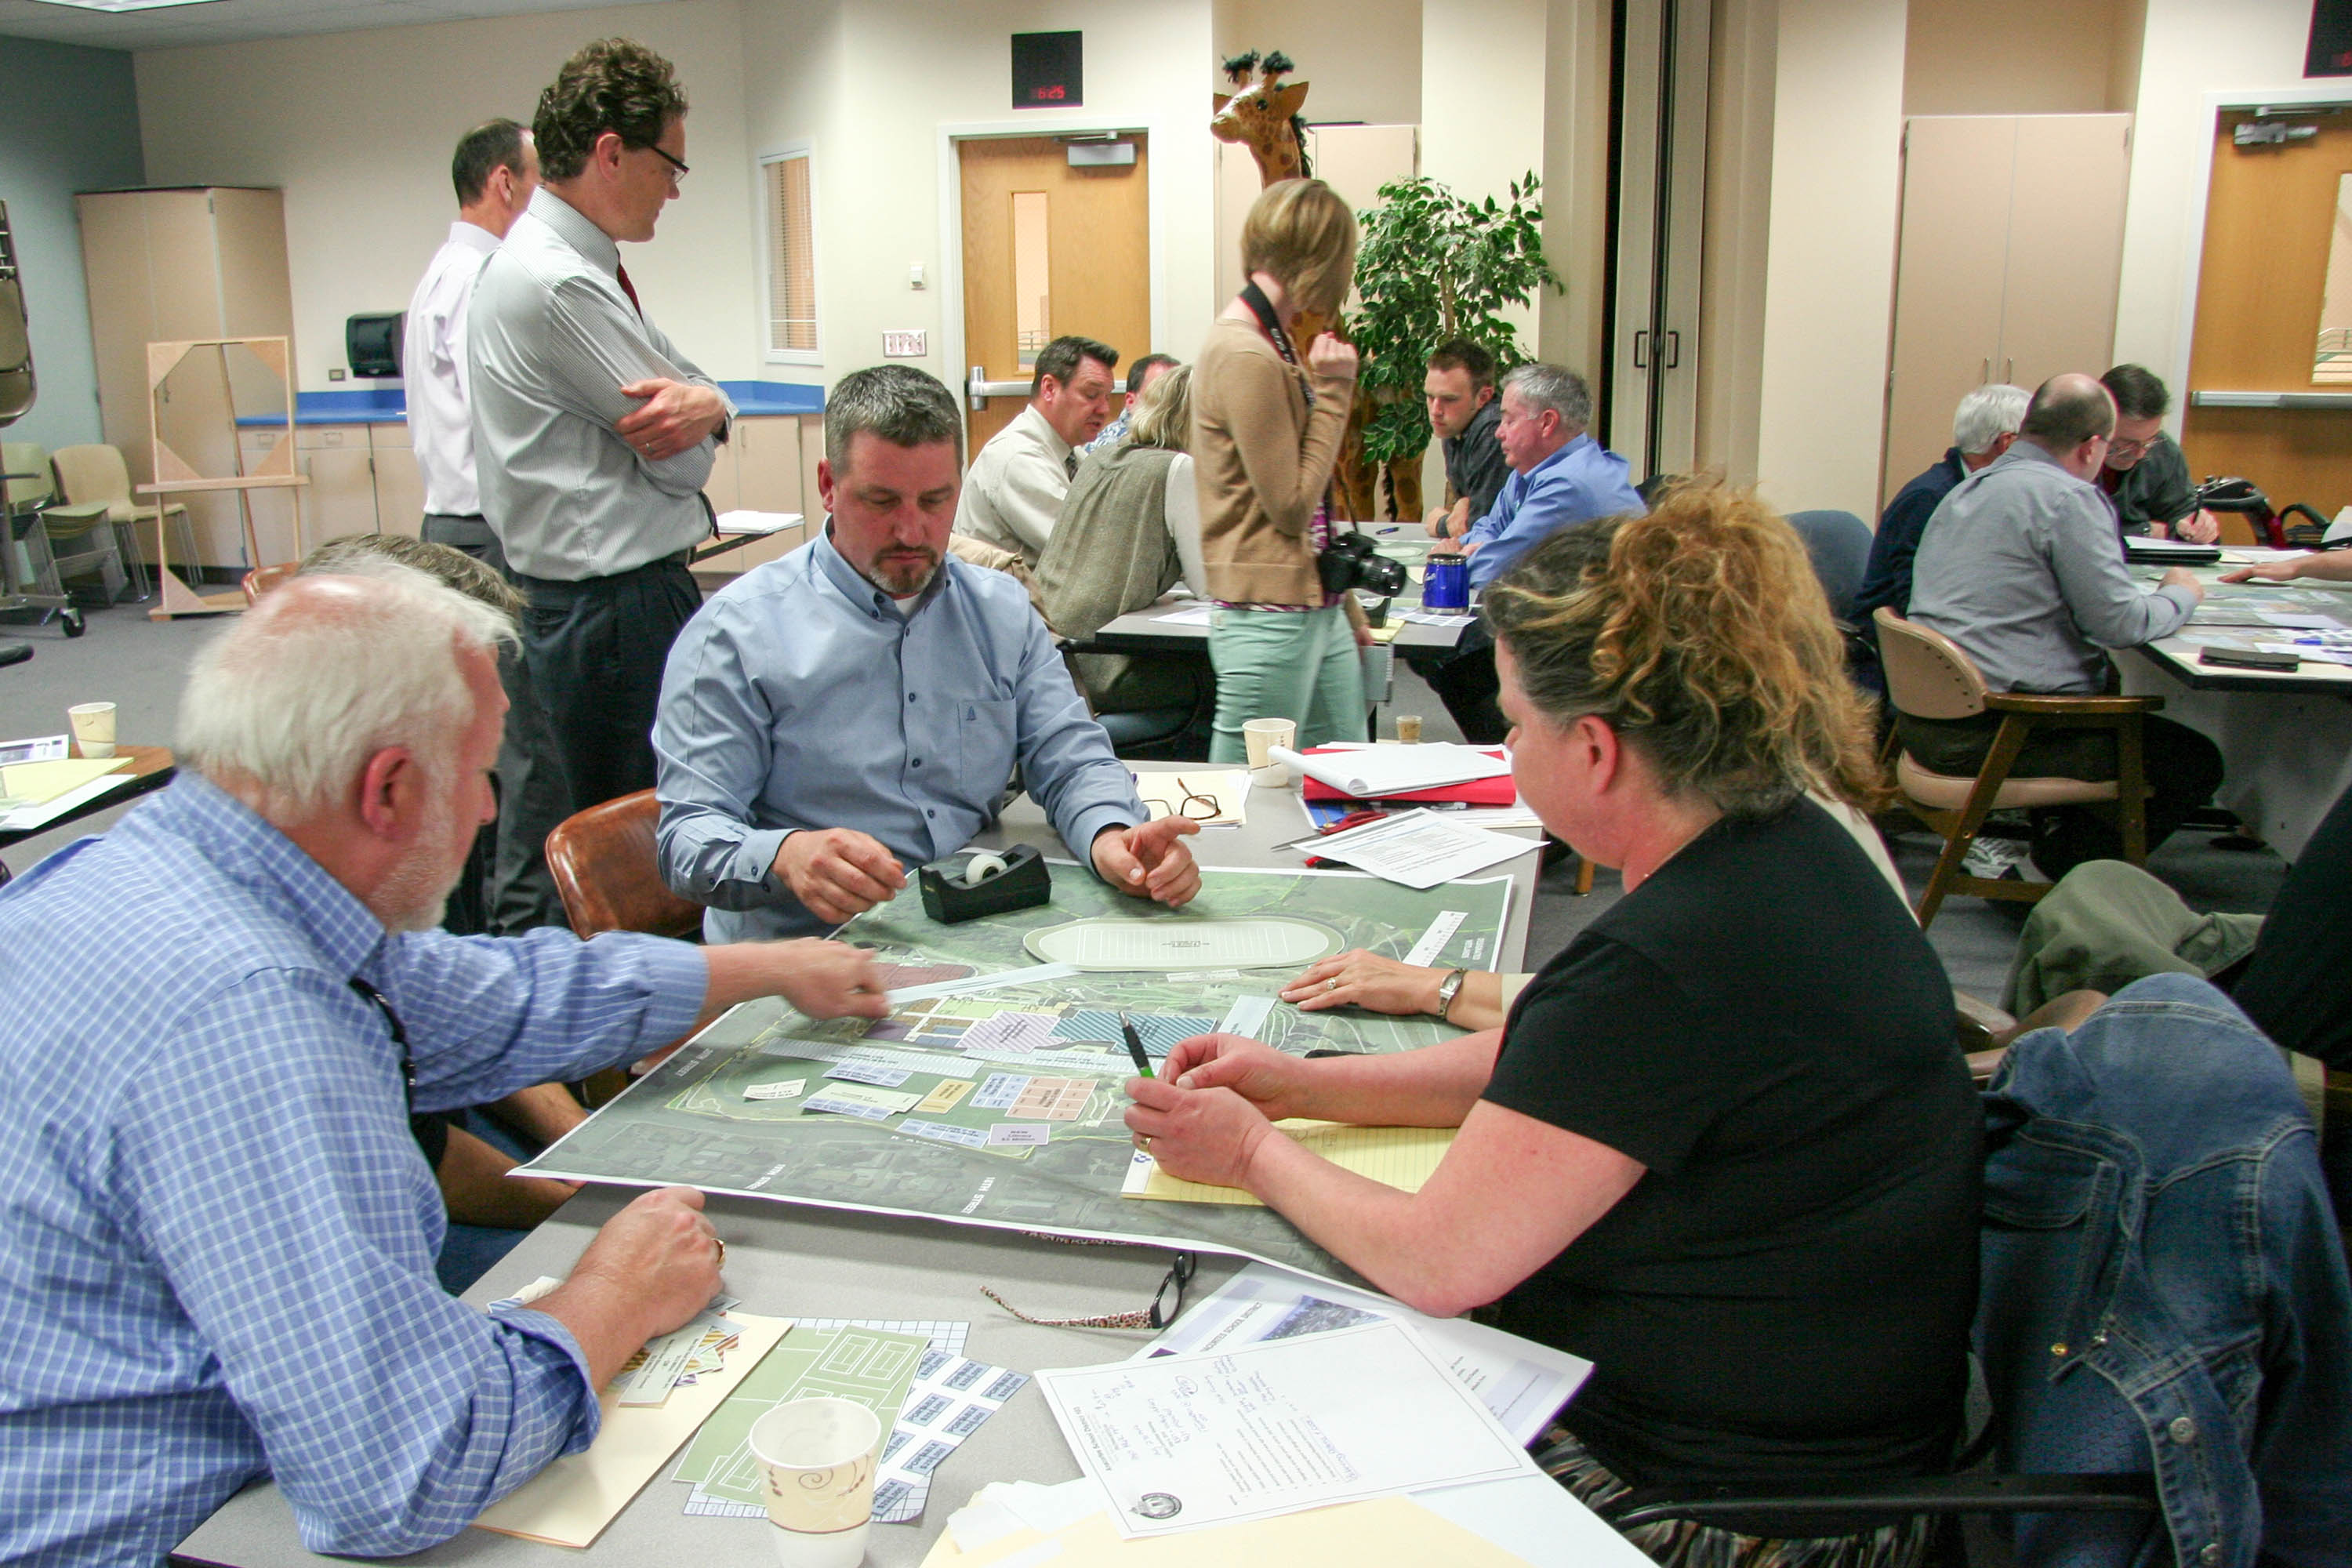 Staff, district, and community members sitting at a table in discussion.